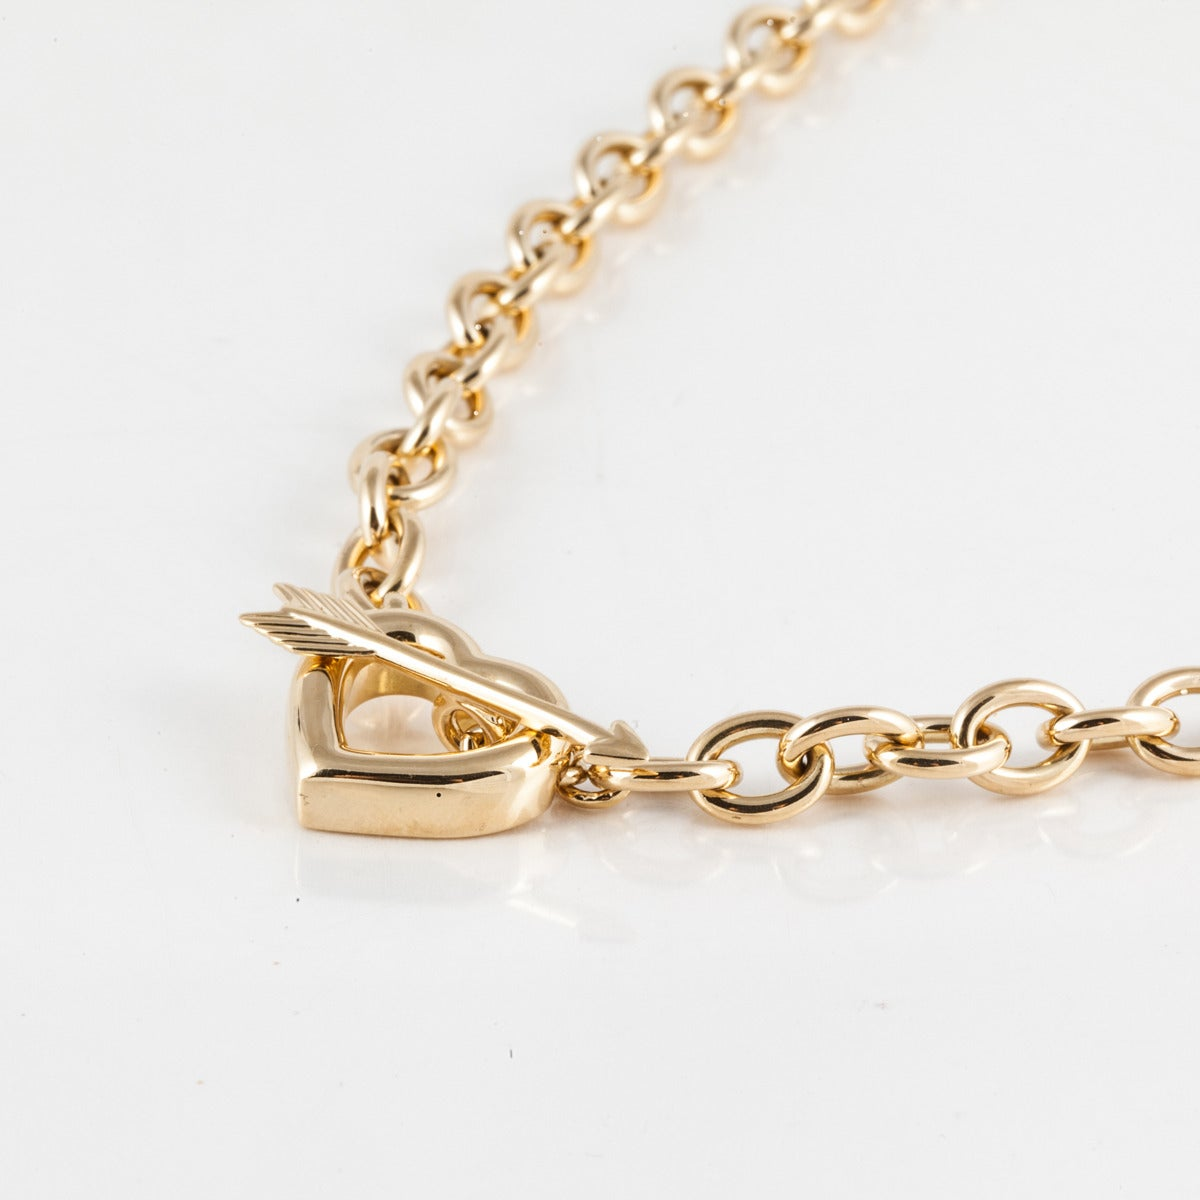 Tiffany 18K yellow gold link necklace.  Features a heart at the bottom with arrow as the toggle closure.  Beautifully made chain and very clever closure.  Fully hallmarked on back of heart.